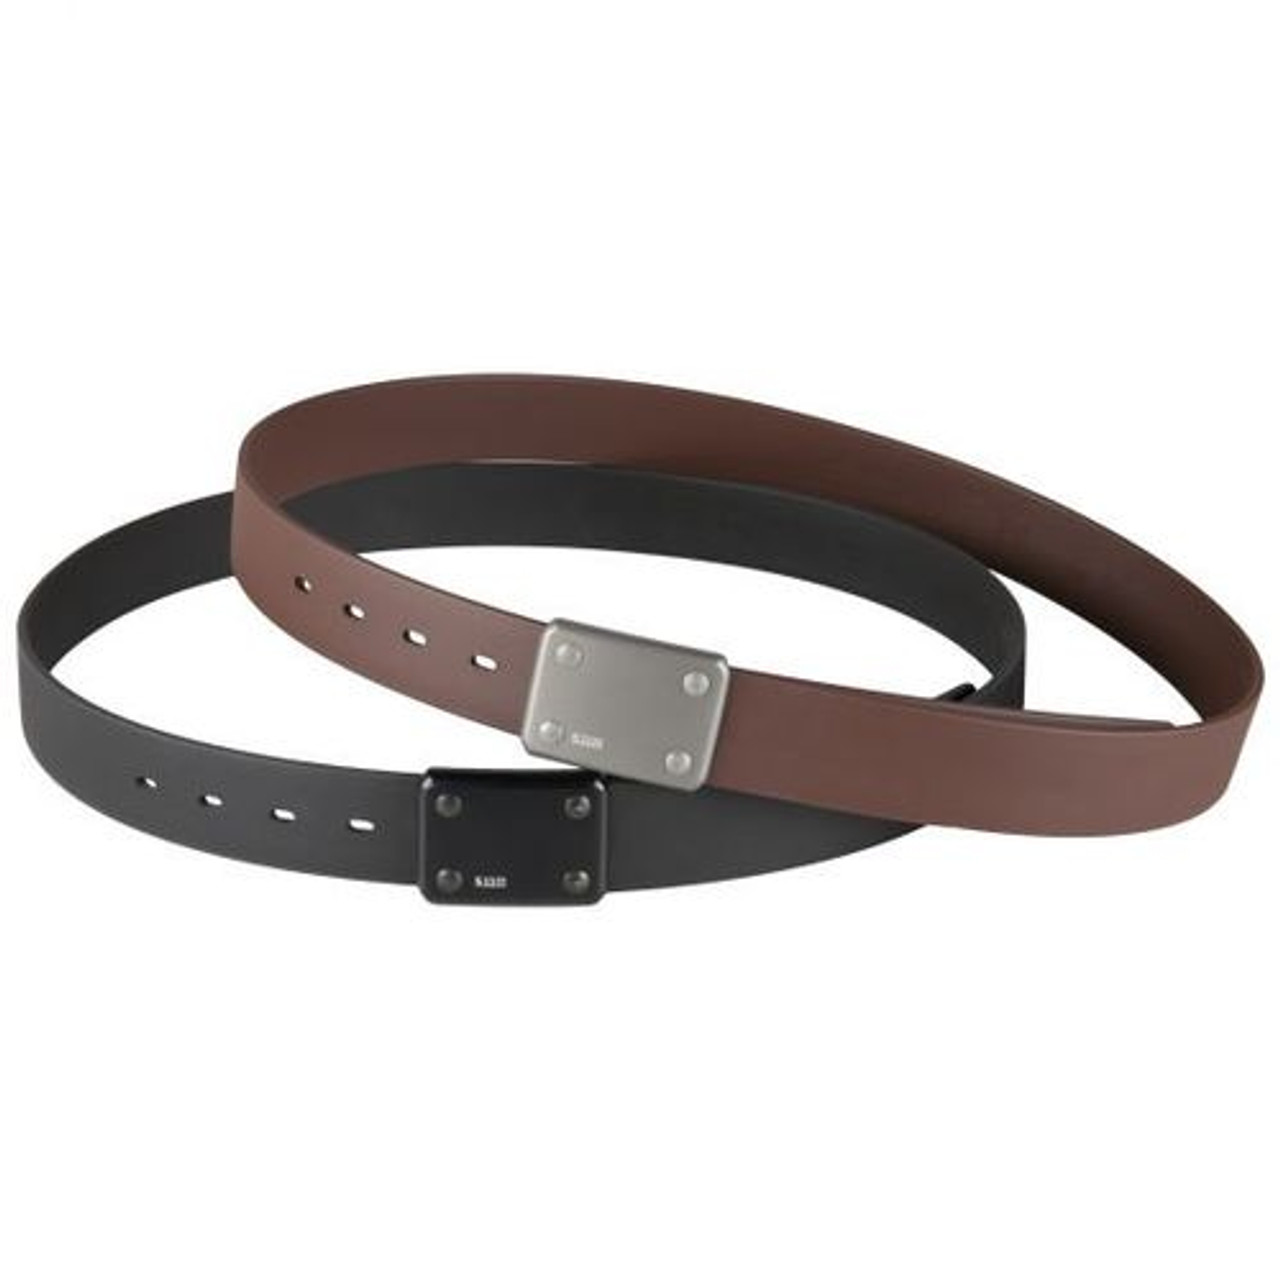 "5.11 Tactical 1.5"" Apex Gunner's Belt, available in Black, or Dark Horse Brown 59492"